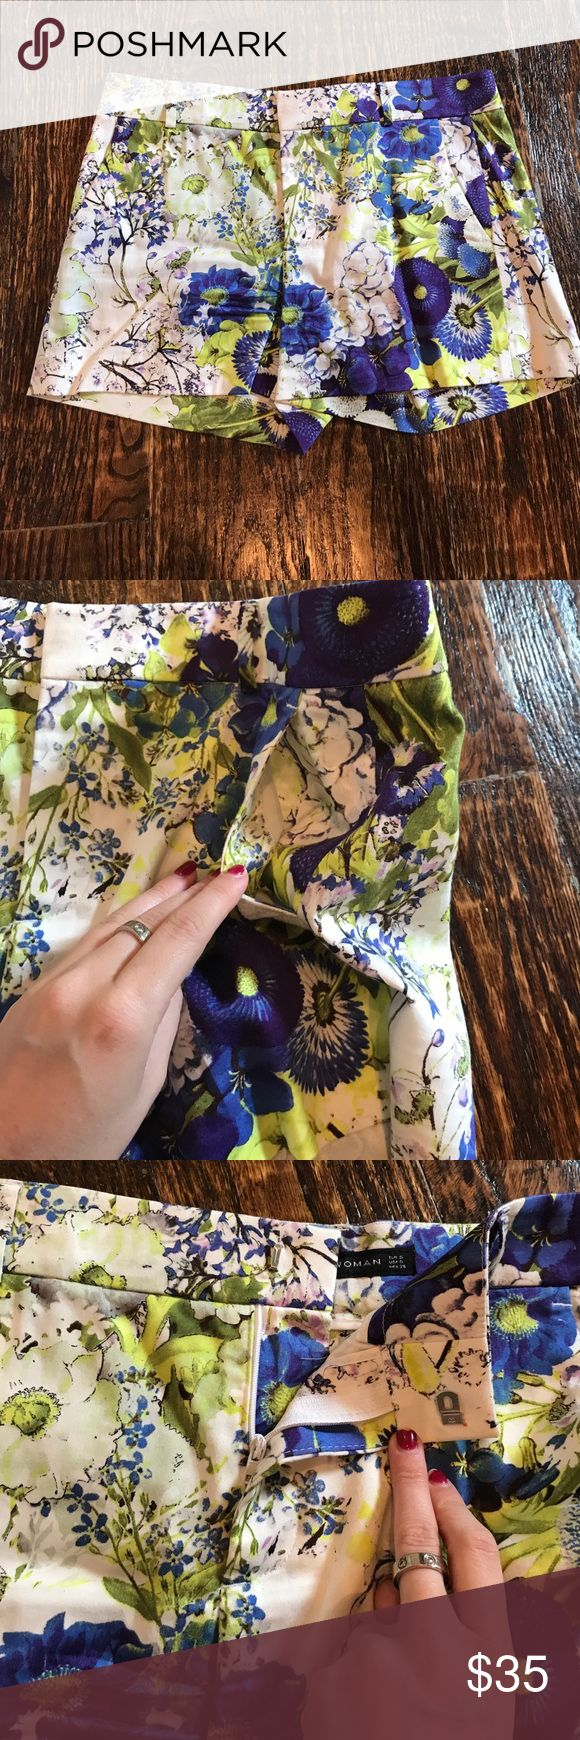 Flower printed shorts with pockets Flower printed shorts with pockets and belt loop Zara Shorts